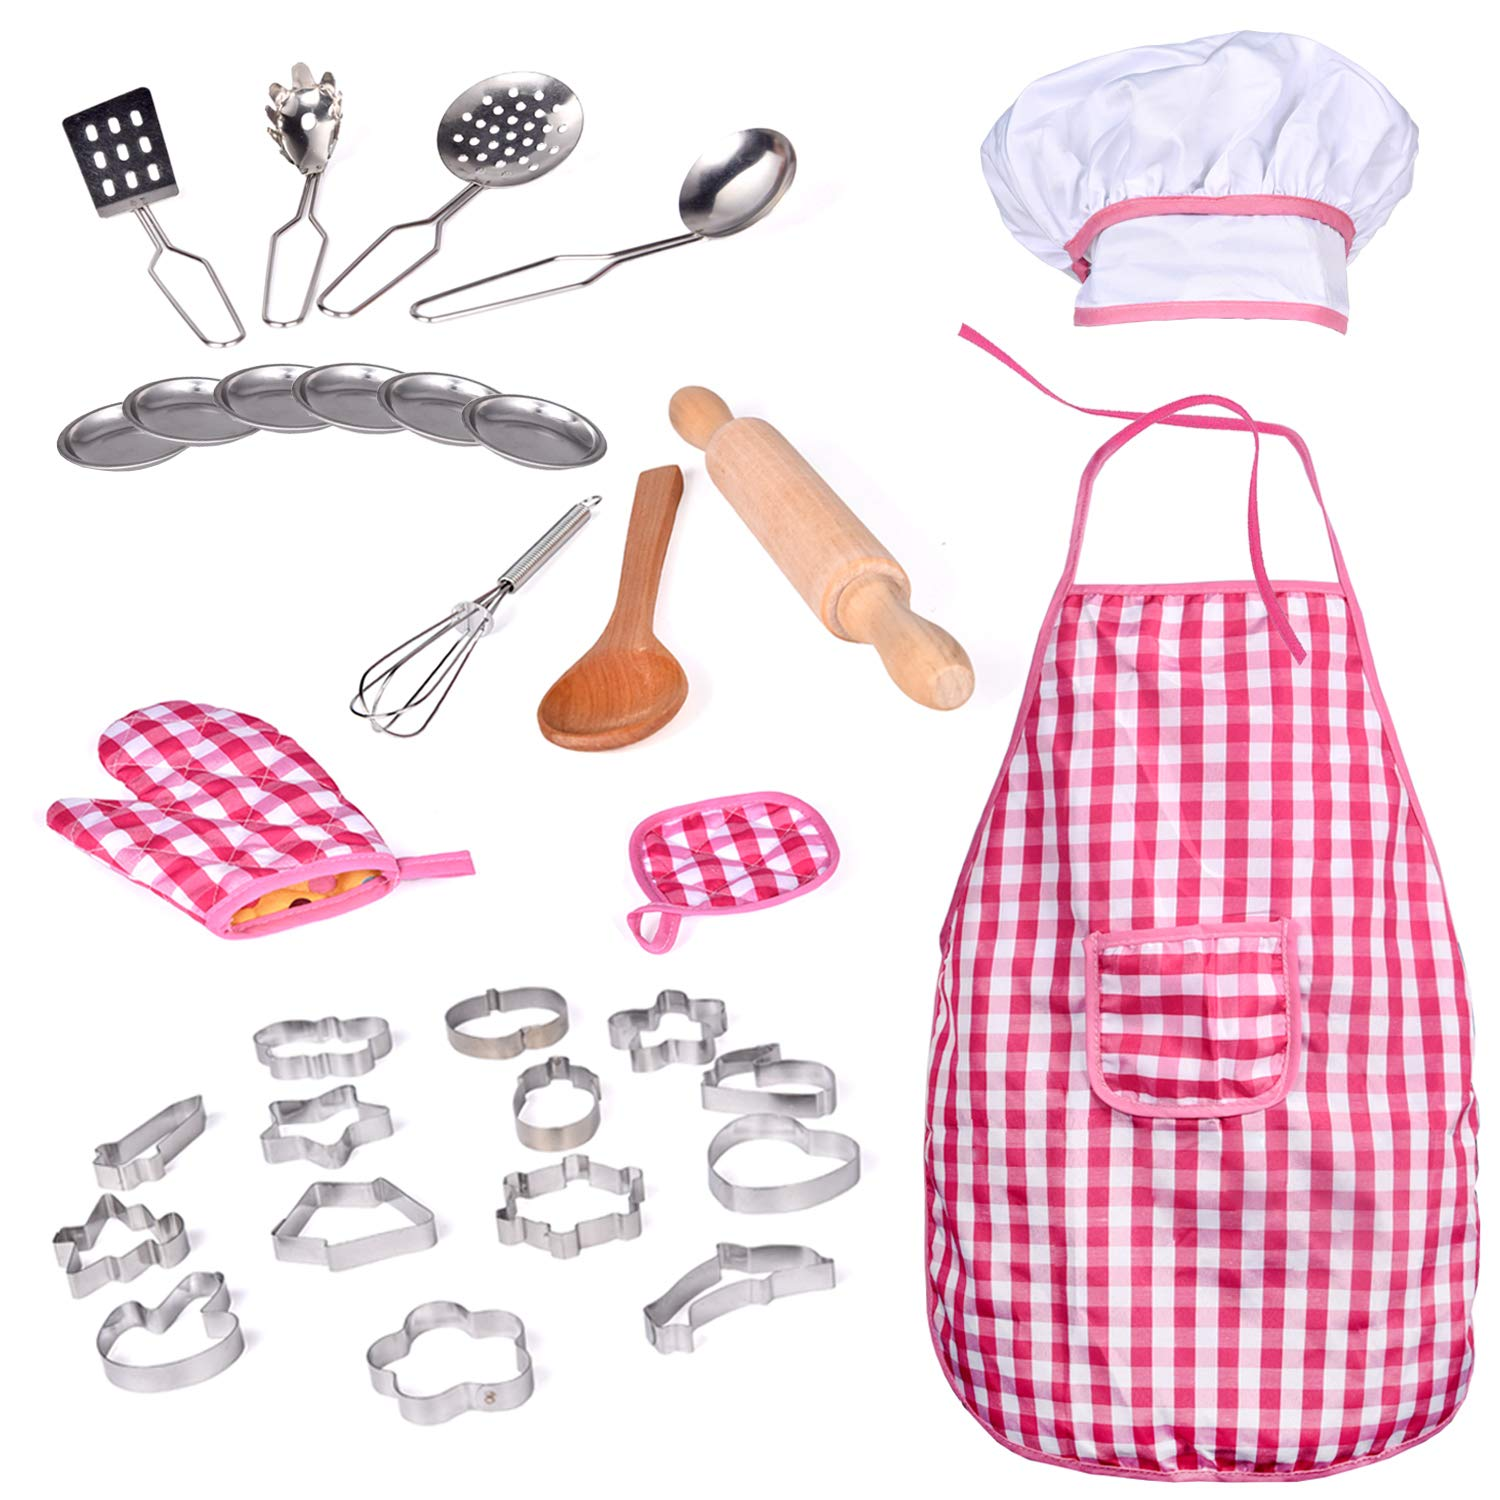 32 PCs Chef Dress Up Clothes Little Girls, Play Kitchen Accessories Set Kids, Cooking Baking Tools, Pretend Play, Birthday Gifts by FUN LITTLE TOYS